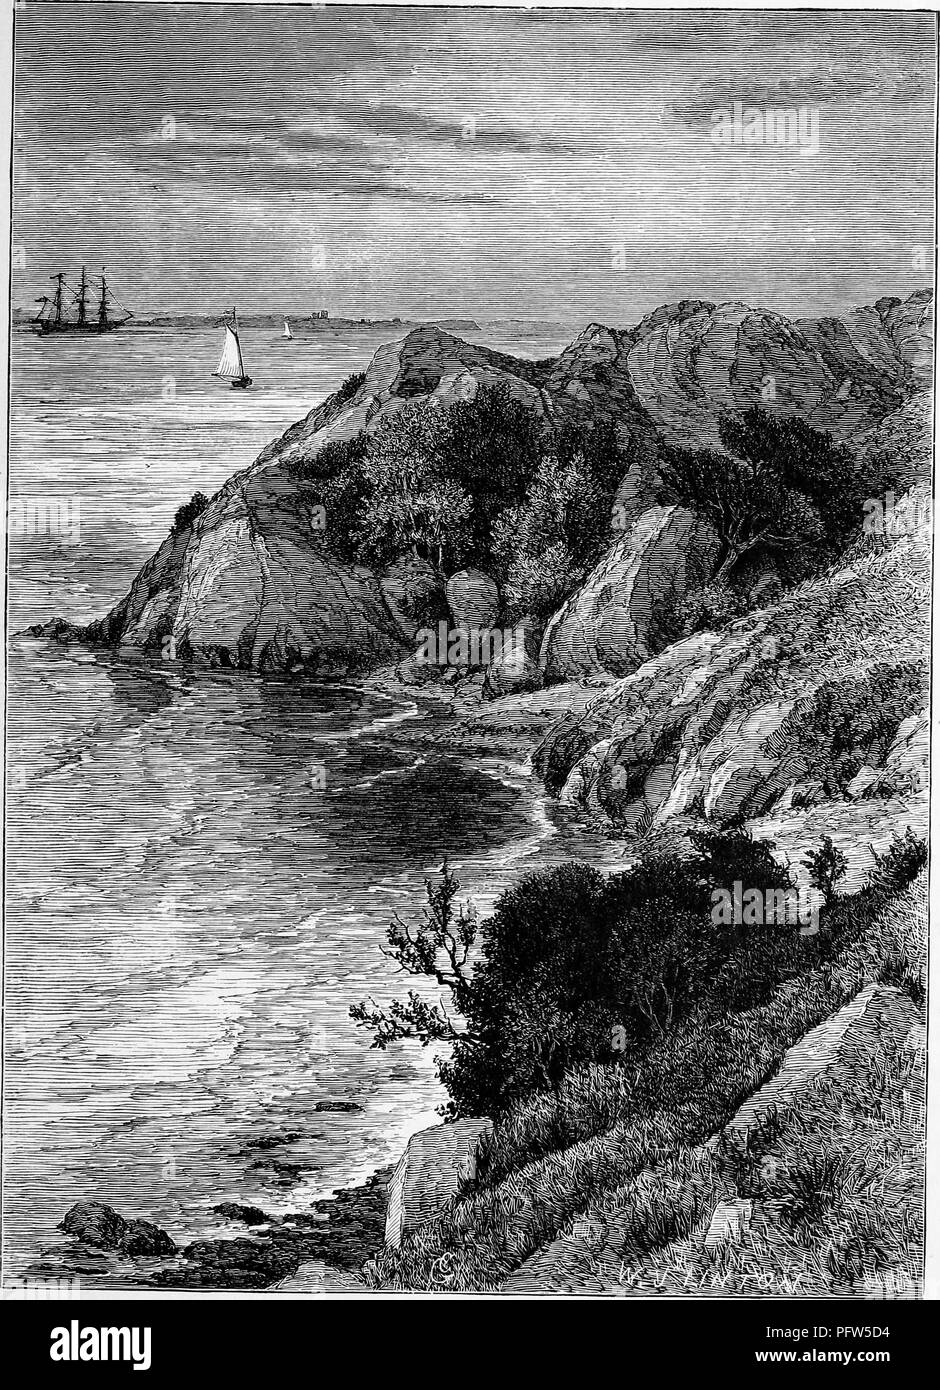 Black and white vintage print depicting a rocky outcropping with several sailing vessels in the distance, located at Brenton Cove, in Newport Rhode Island, published in William Cullen Bryant's edited volume 'Picturesque America; or, The Land We Live In', 1872. Courtesy Internet Archive. () - Stock Image